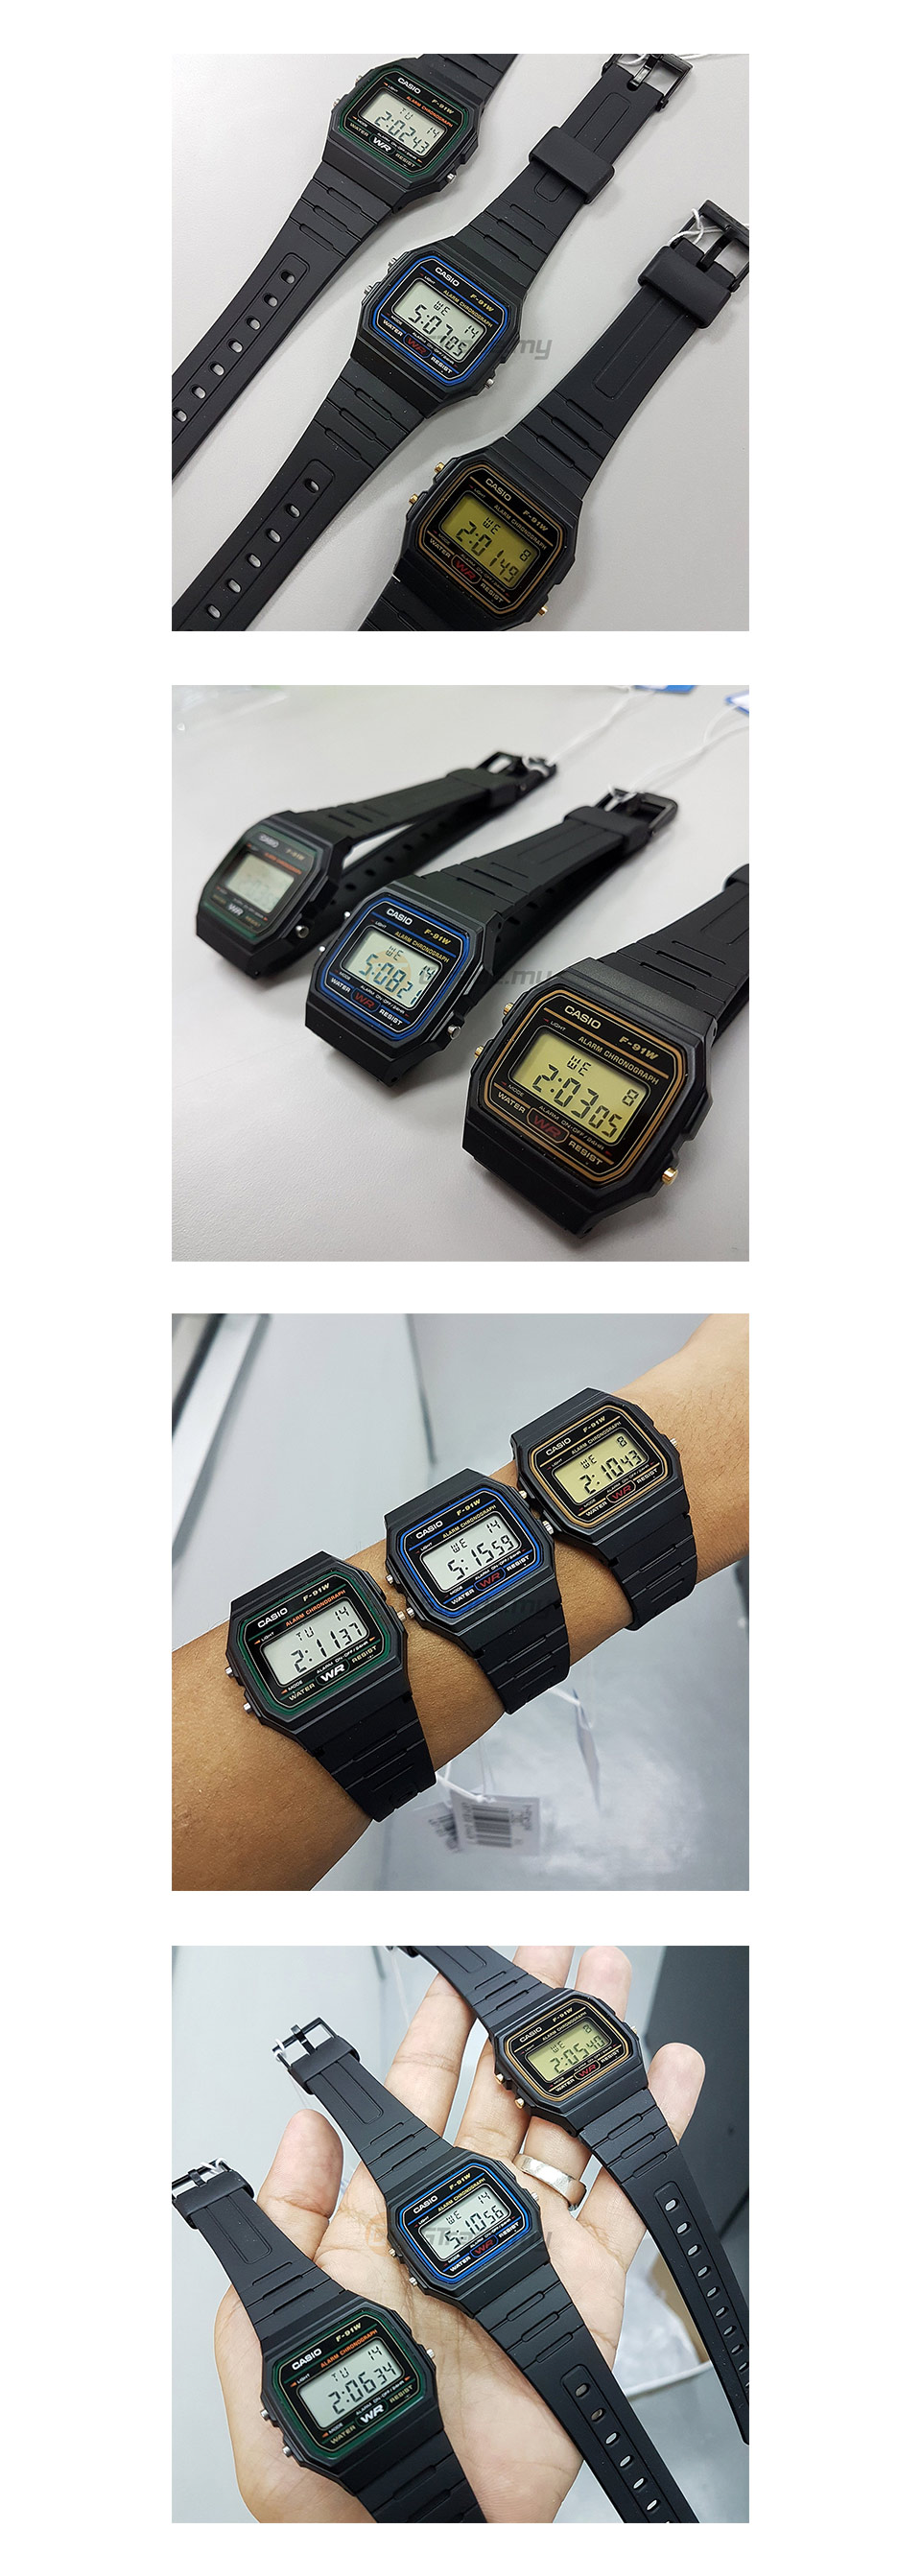 casio-classic-digital-watch-alarm-calendar-casual-f-91w-1-p